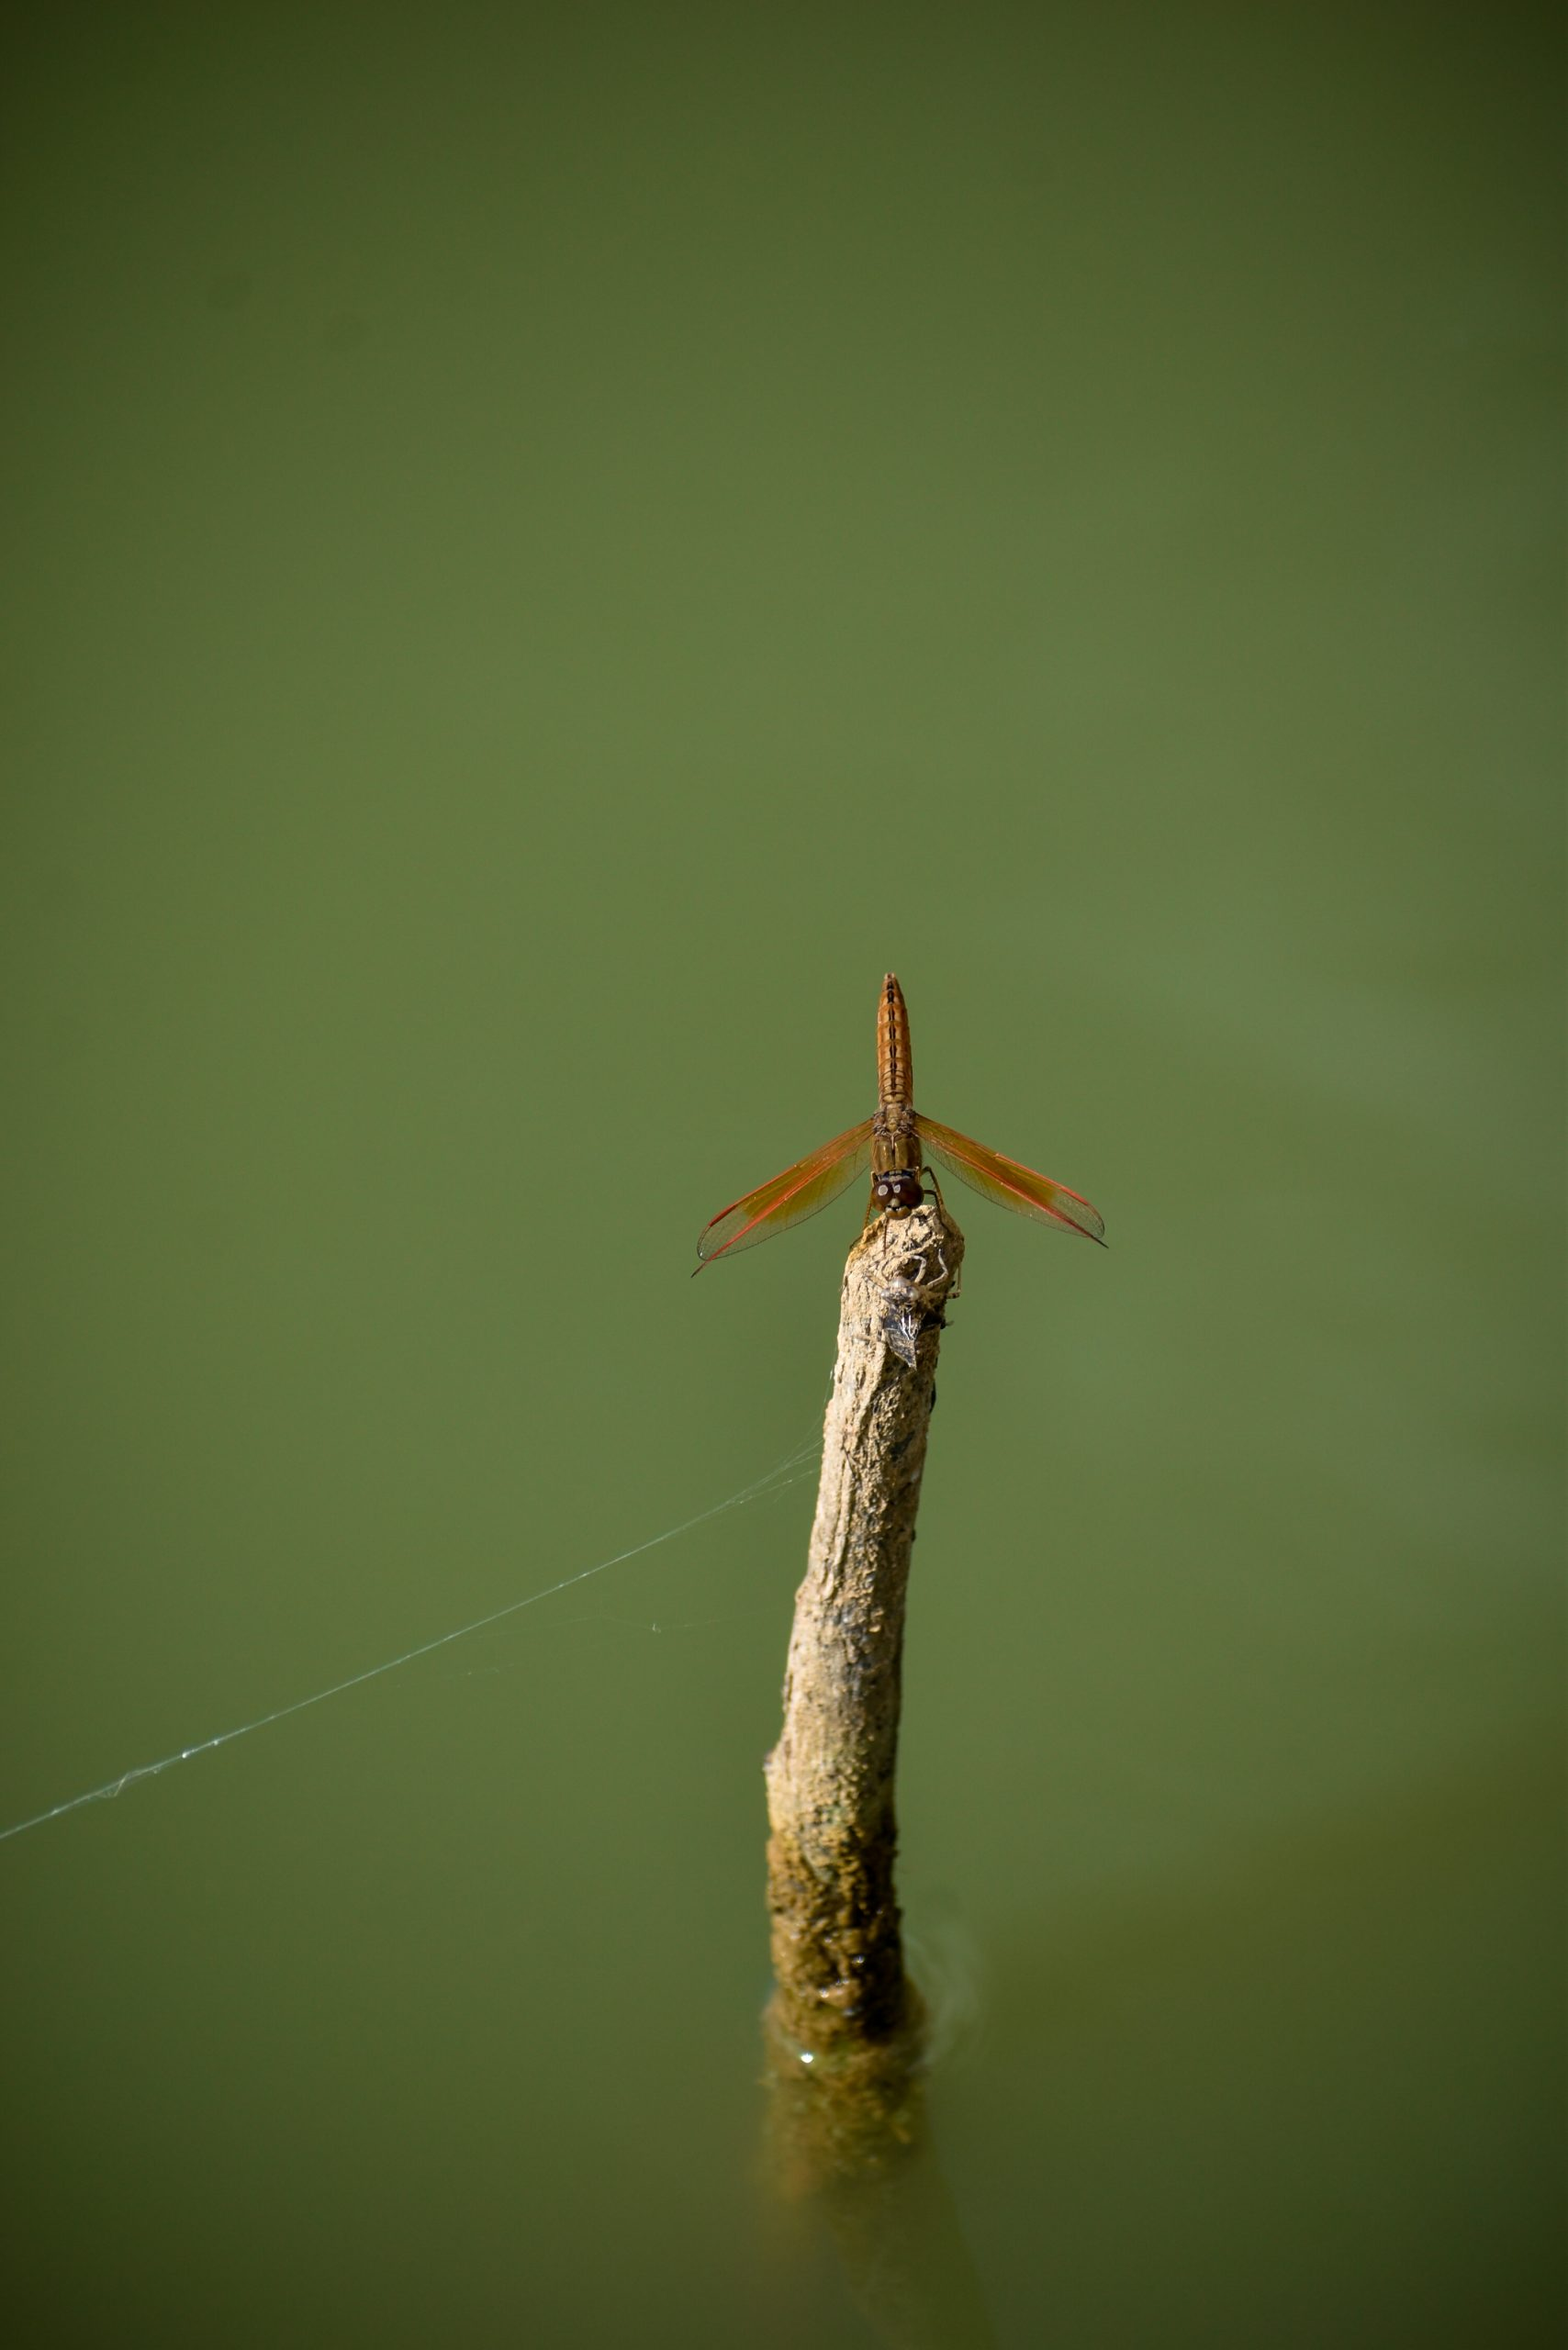 An insect on a stick